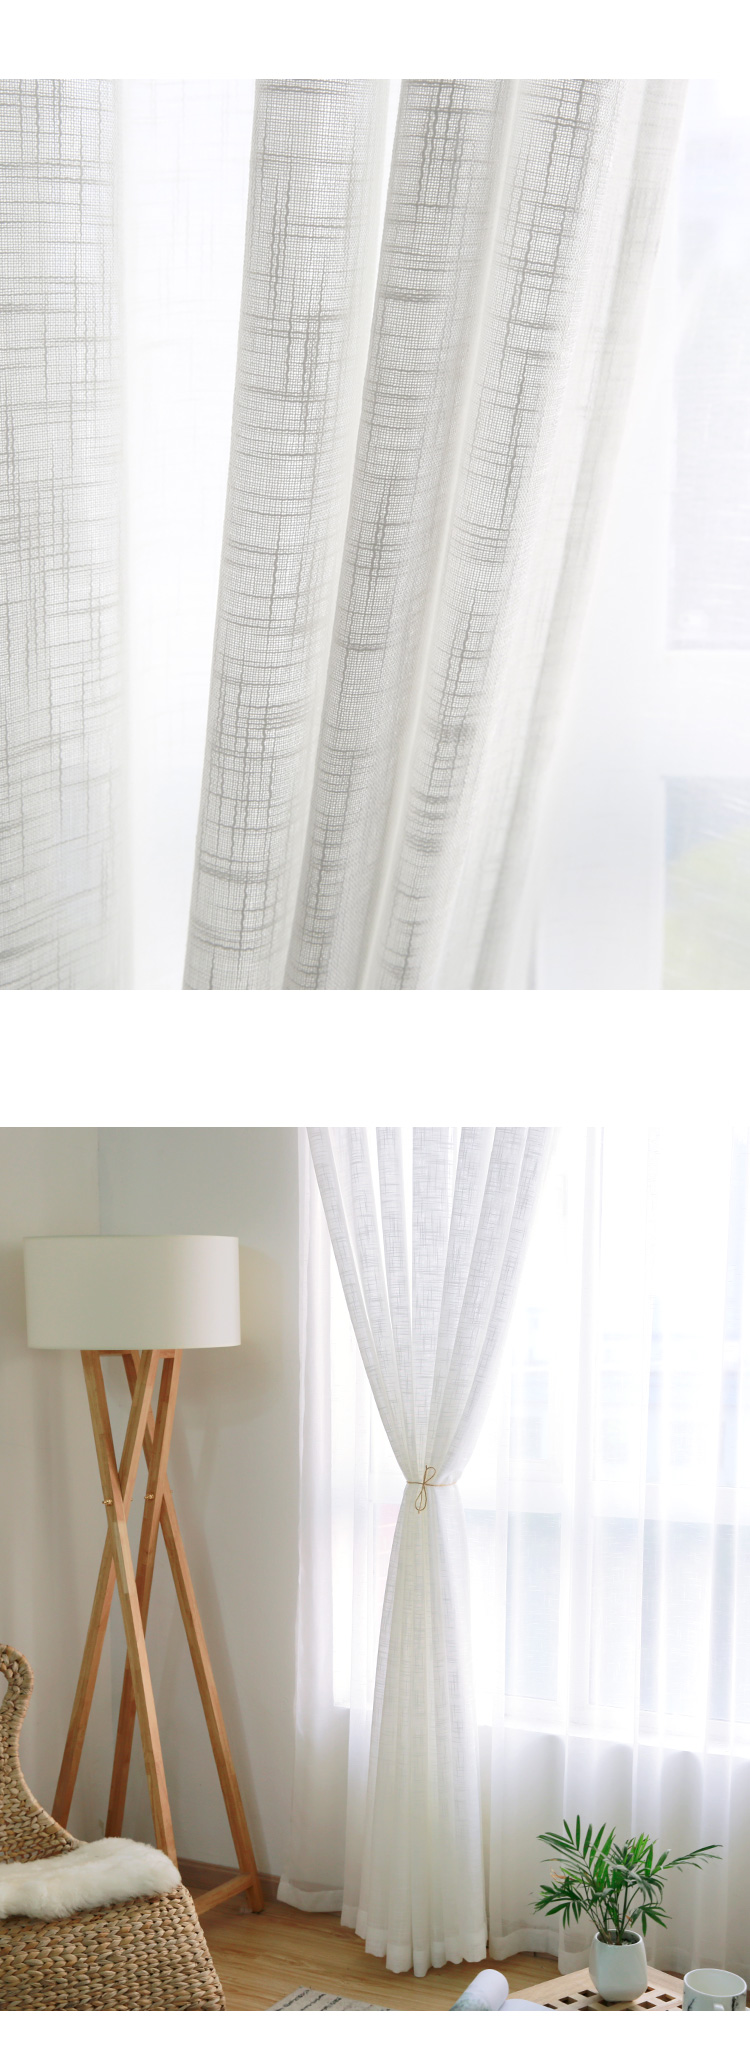 CITYINCITY Tulle  American Curtains for Living room Soft White Voile  solid Rural Tulle Curtain for bedroom ready made curtain10